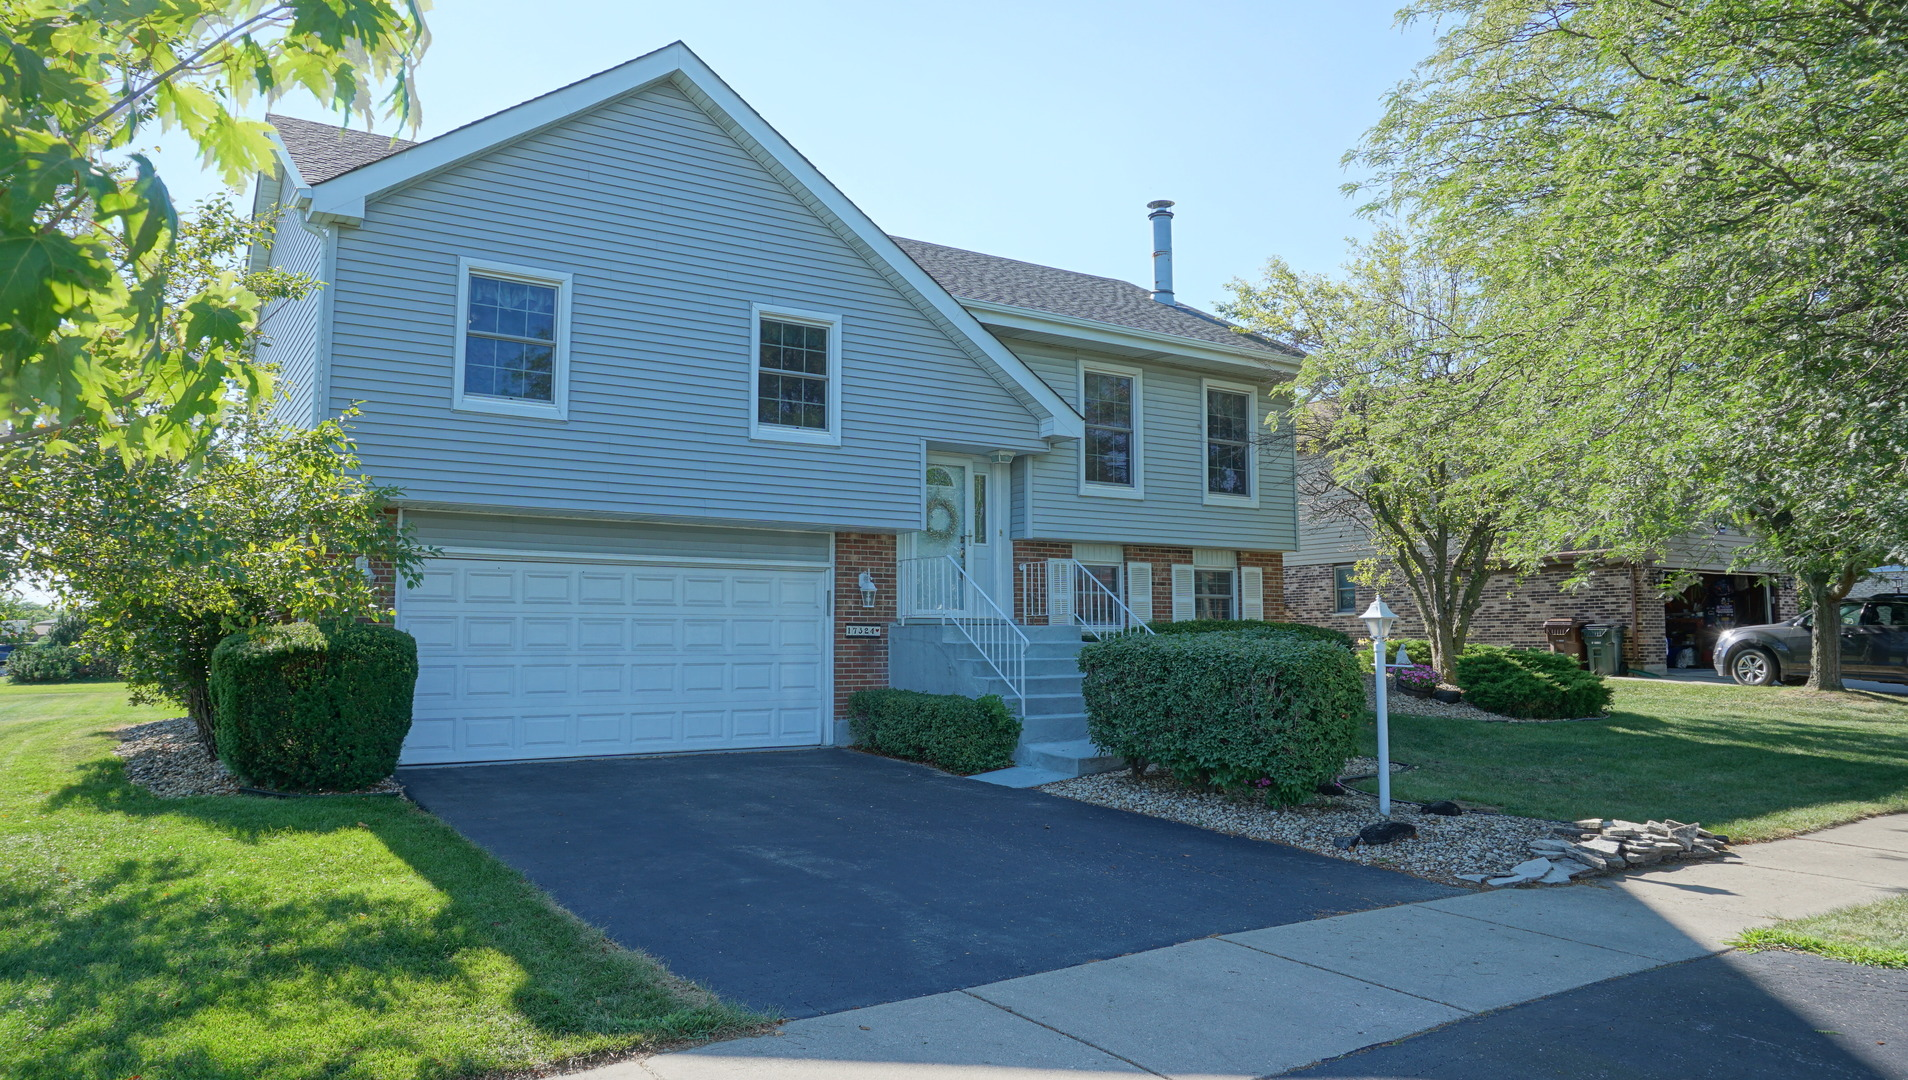 17324 VALLEY DRIVE, TINLEY PARK, IL 60487